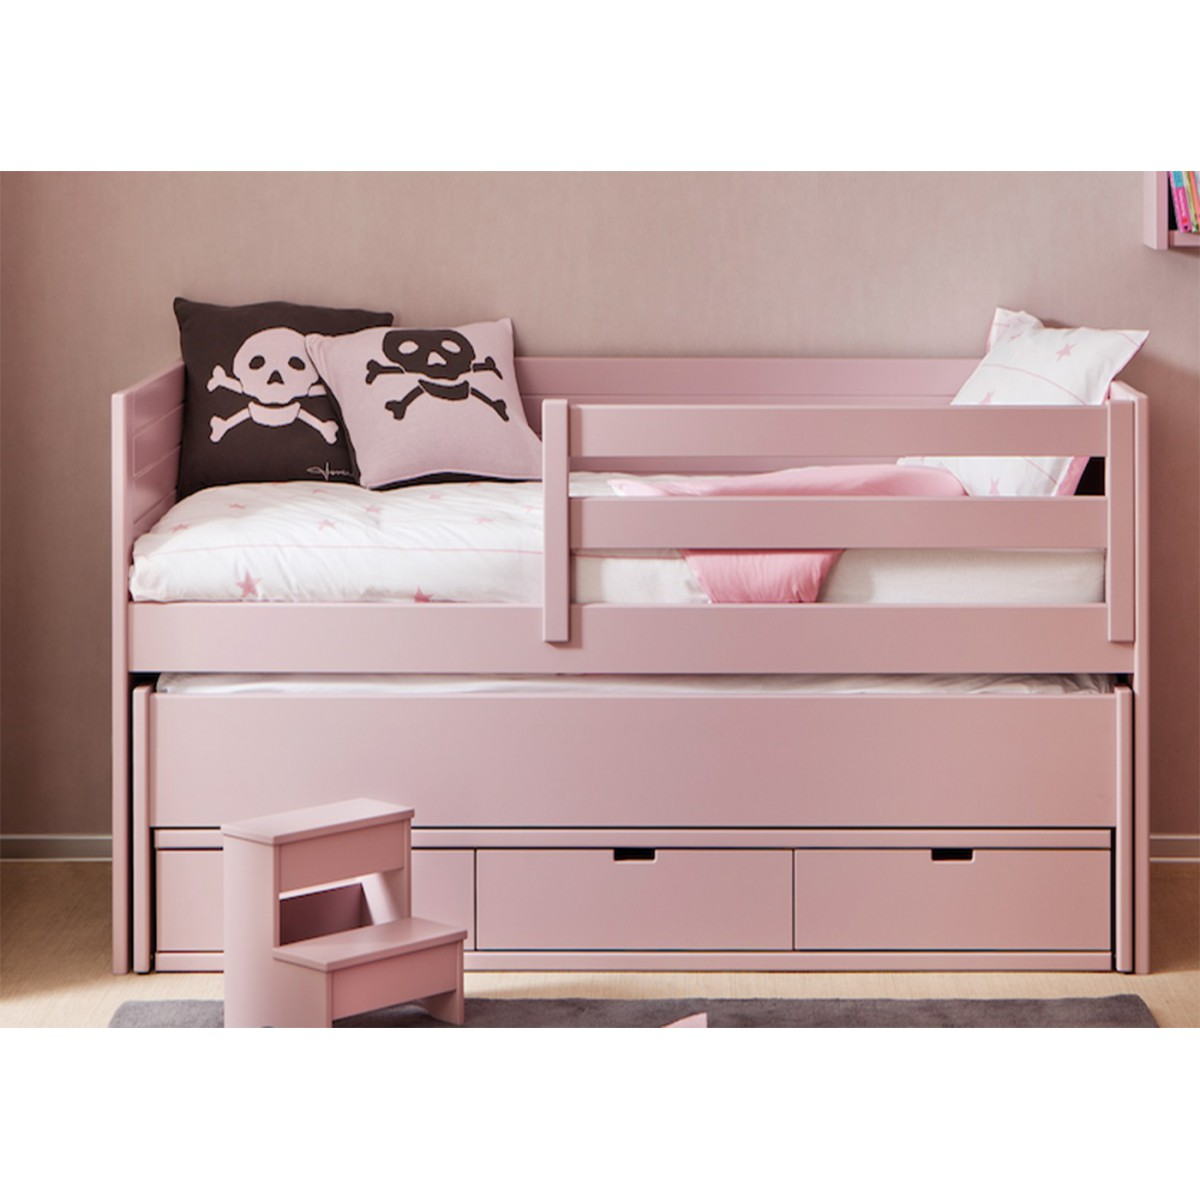 lit gigogne pour enfant avec 3 tiroirs de rangement sign. Black Bedroom Furniture Sets. Home Design Ideas